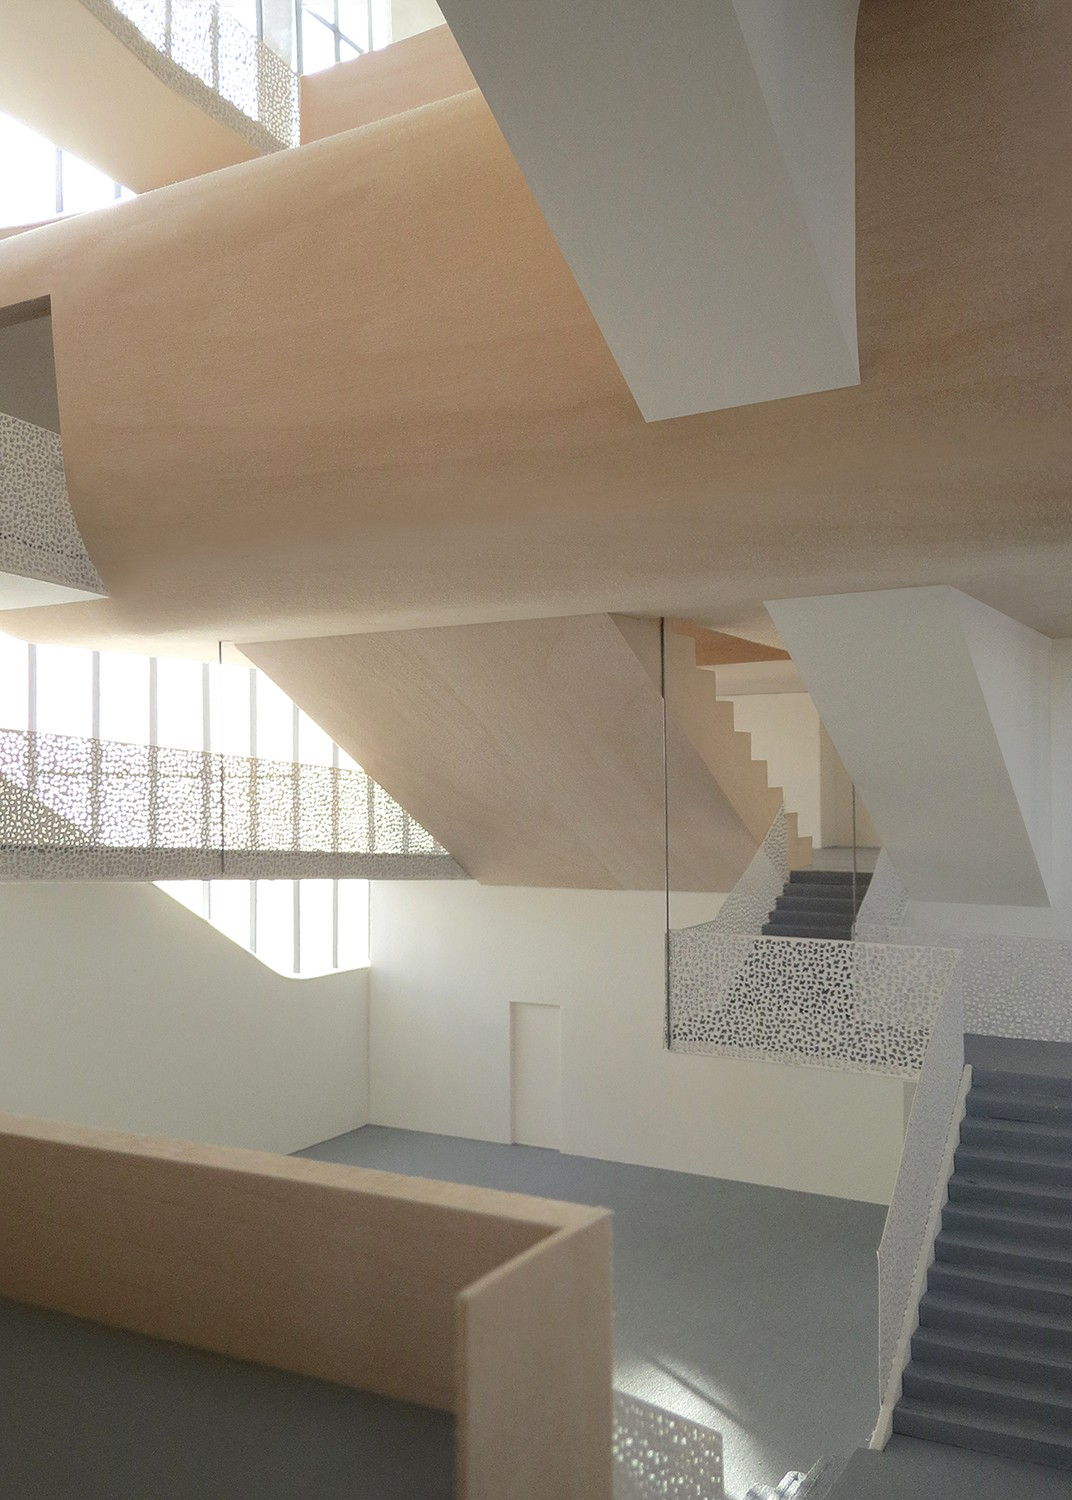 https://s3.us-east-2.amazonaws.com/steven-holl/uploads/projects/project-images/StevenHollArchitects_HPL_IMG_3644_WV.jpg